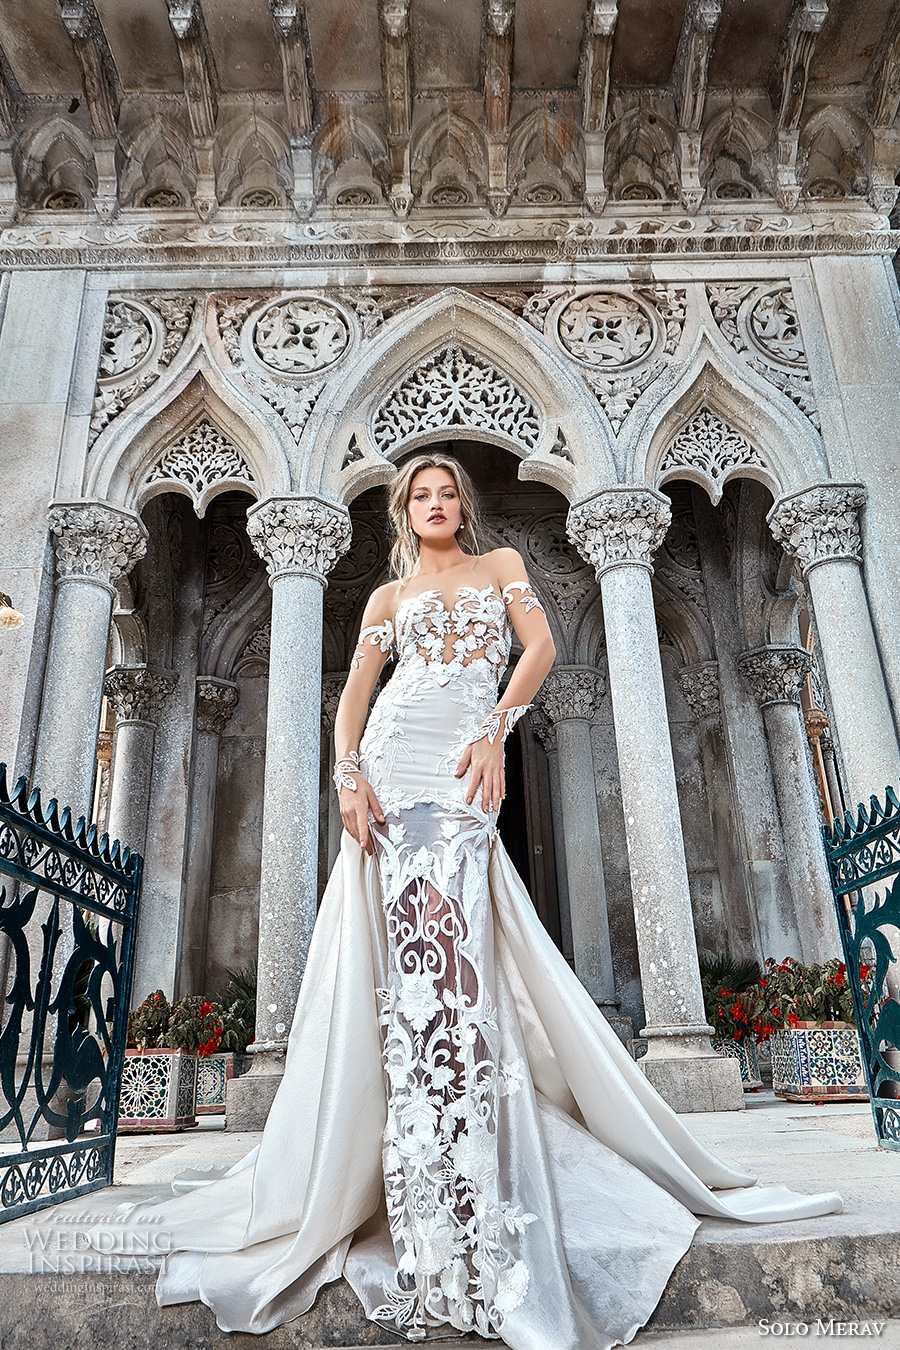 Solo merav 2017 wedding dresses games of lace bridal for Wedding dress with overskirt